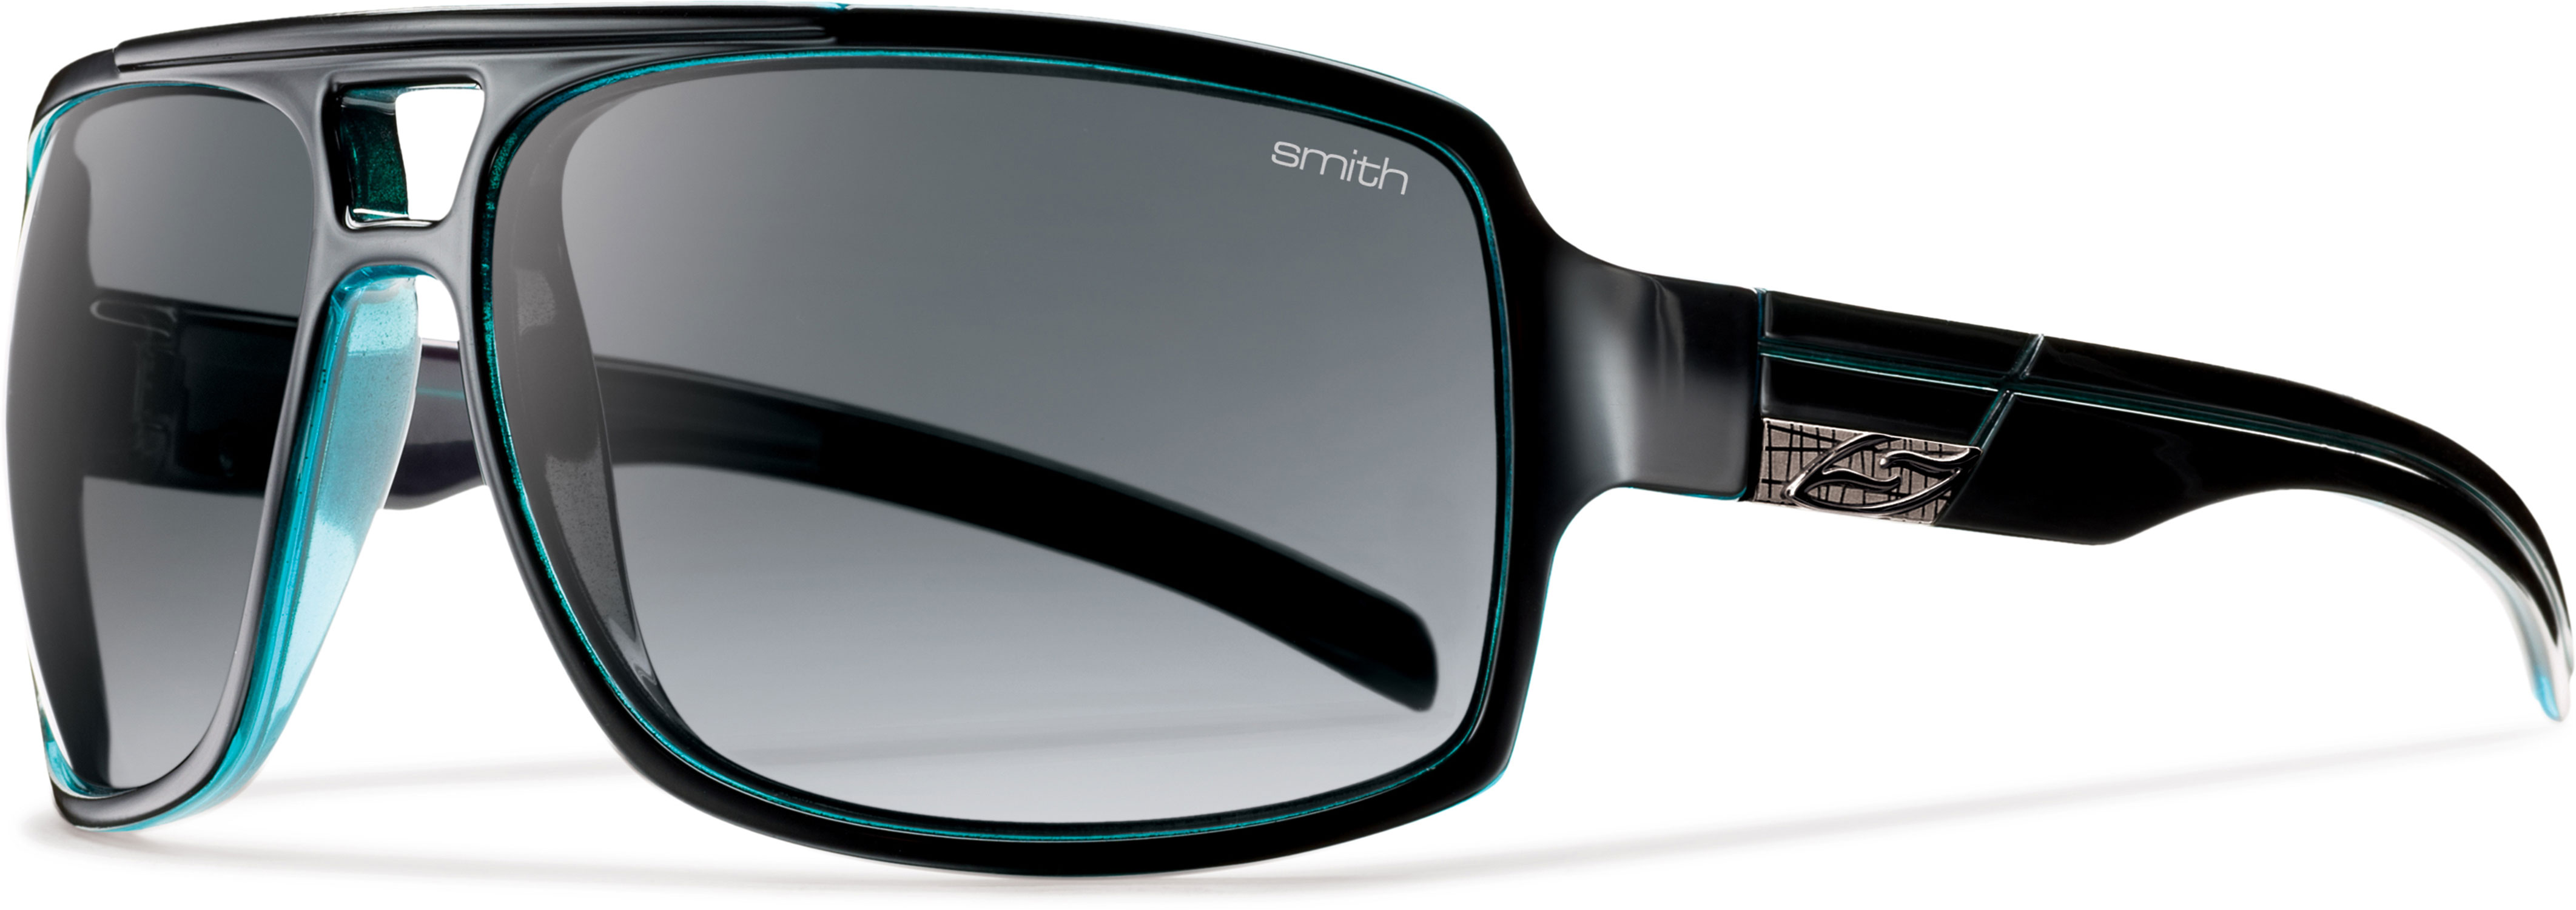 Folks won't see your shifty eyes as you attempt to con them out of whatever it is you're after. The large lens silhouette delivers with plenty of coverage. The Swindler is streetwise, deceptively lightweight, and comfortable.Key Features of the Smith Swindler Sunglasses: Medium Fit / Large Coverage Carbonic TLT Lenses Evolve Frame Material with Hydrophilic Temple Pads 8 Base Lens Curvature 61.15.125 - $83.95